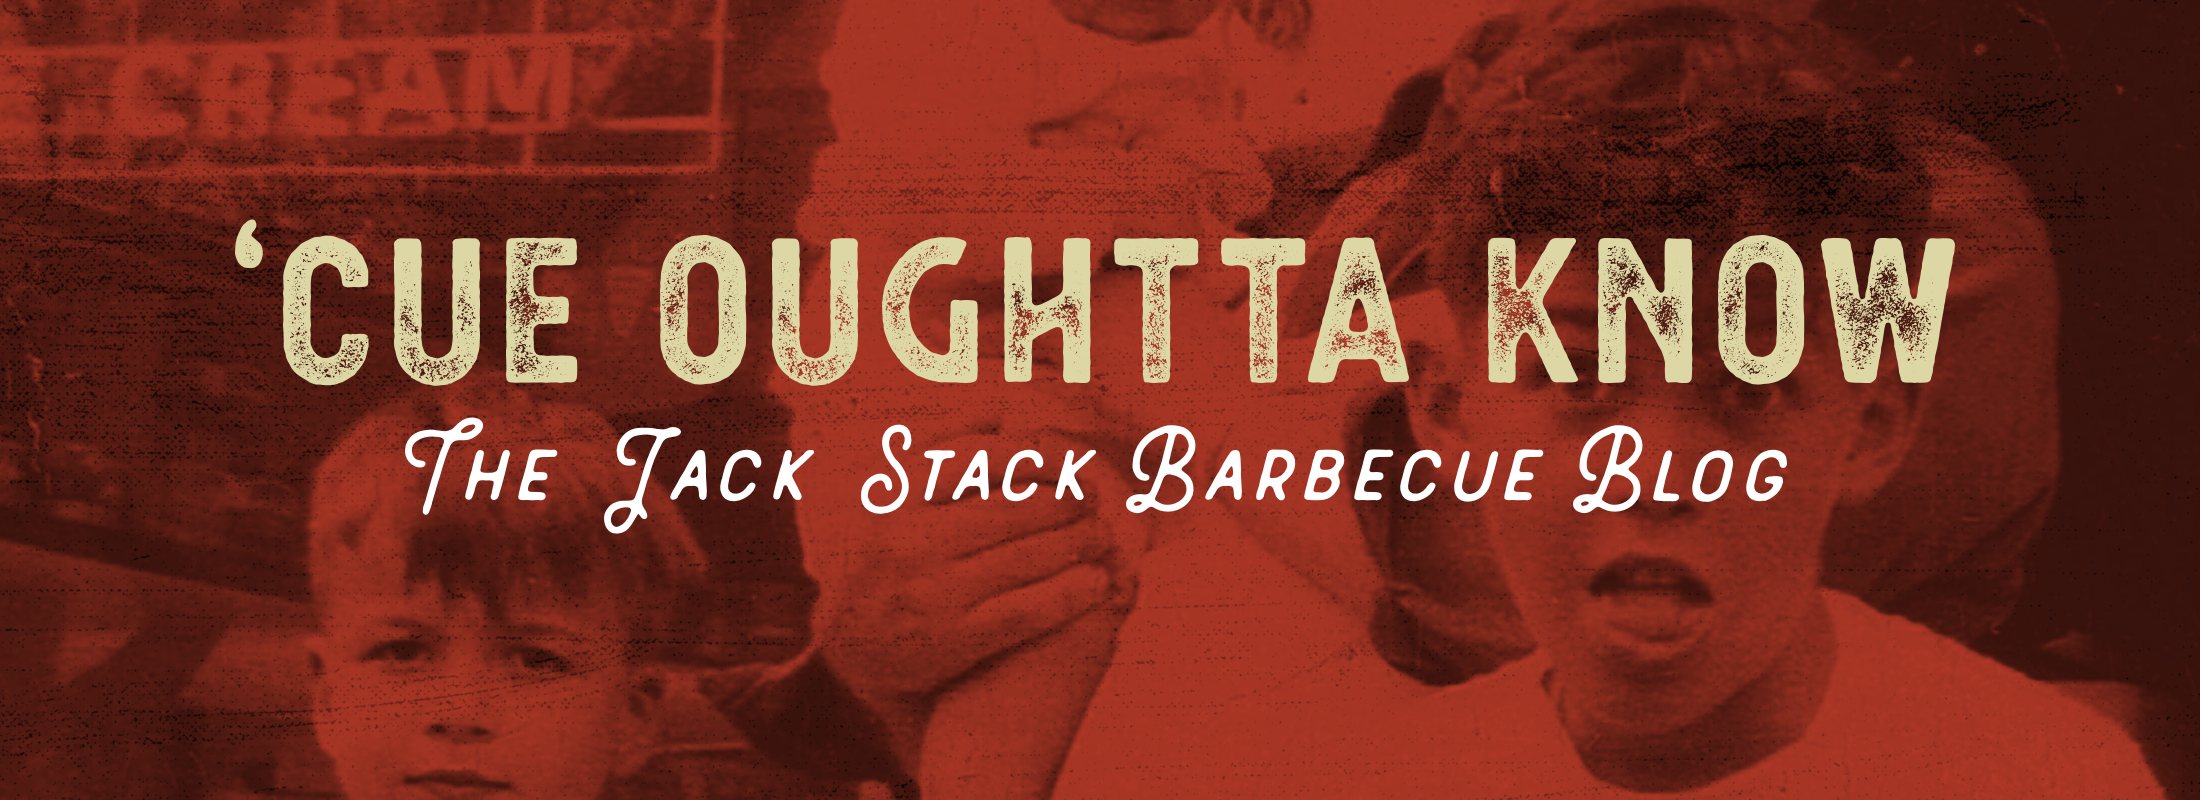 'Cue Oughtta Know | Jack Stack Barbecue Blog